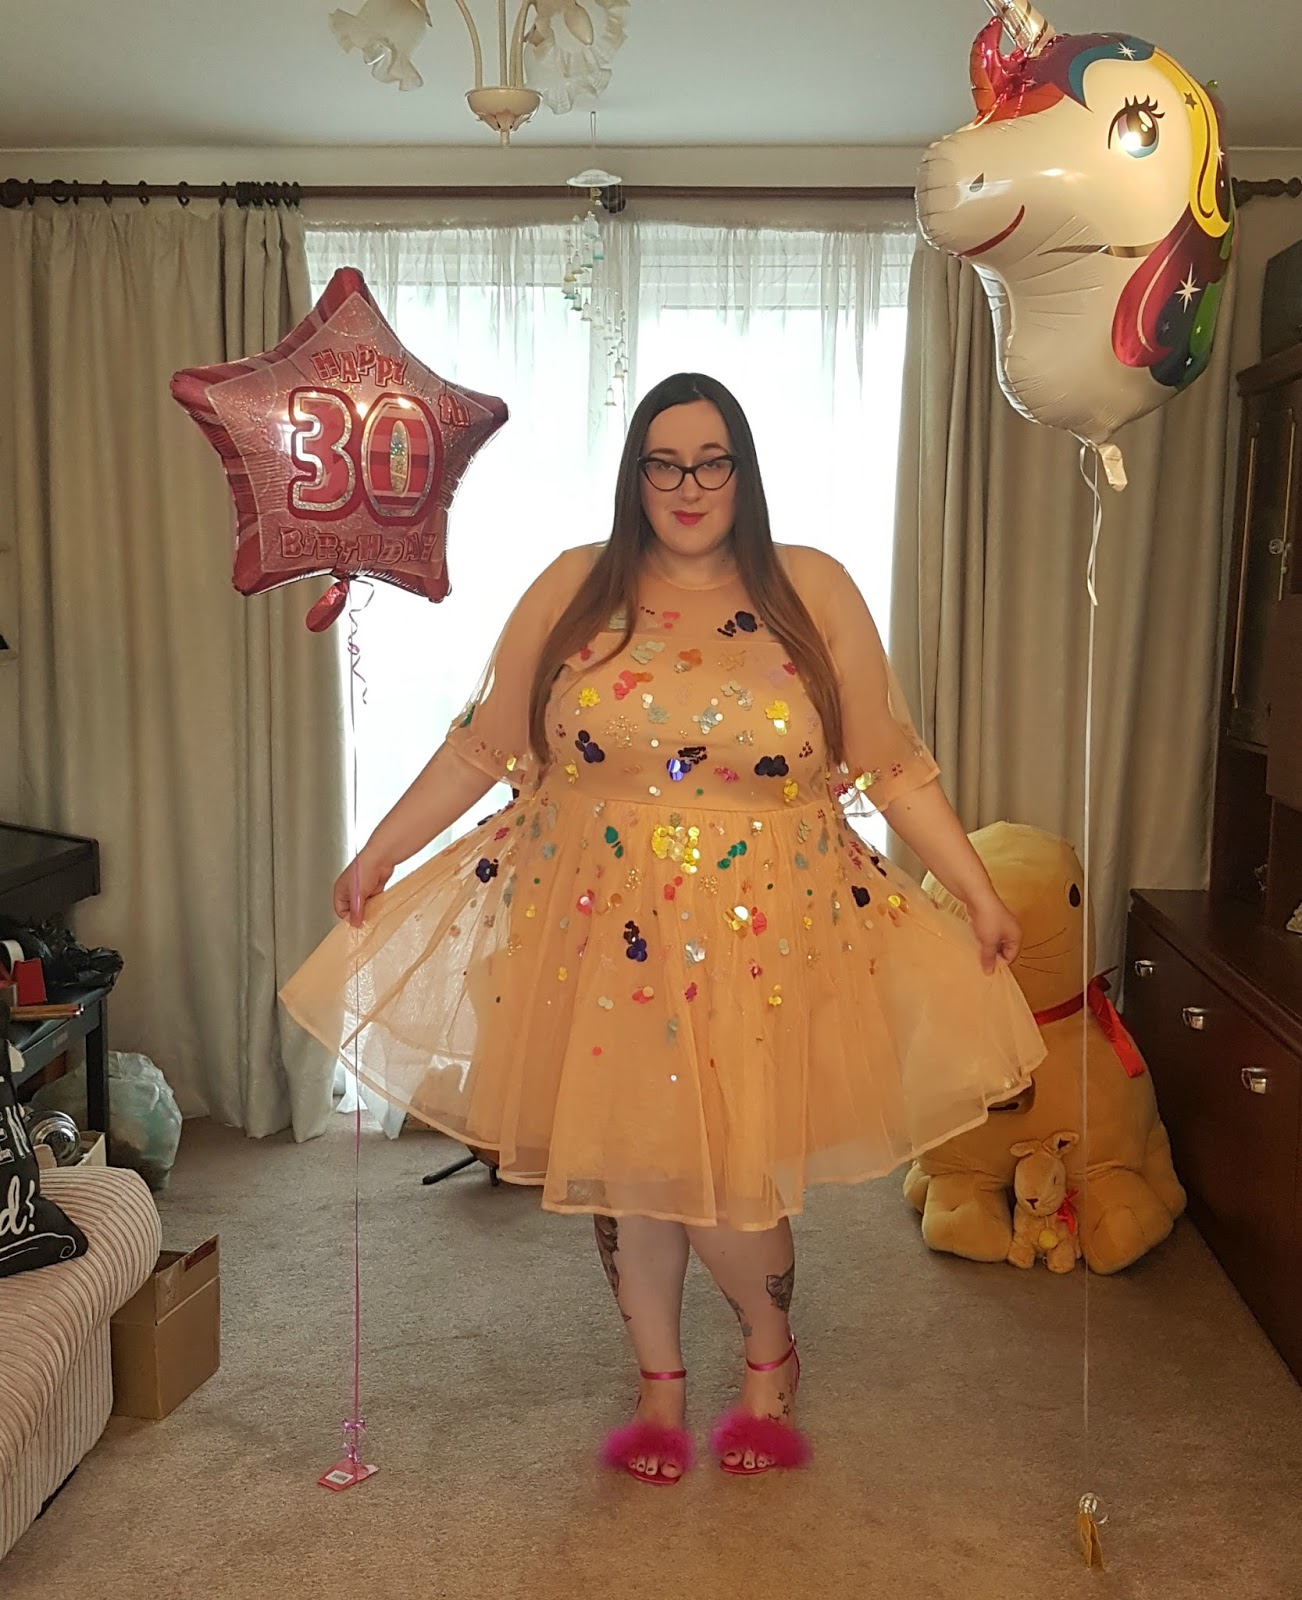 00940b2e855 ASOS Curve Occasion dresses review - Does My Blog Make Me Look Fat